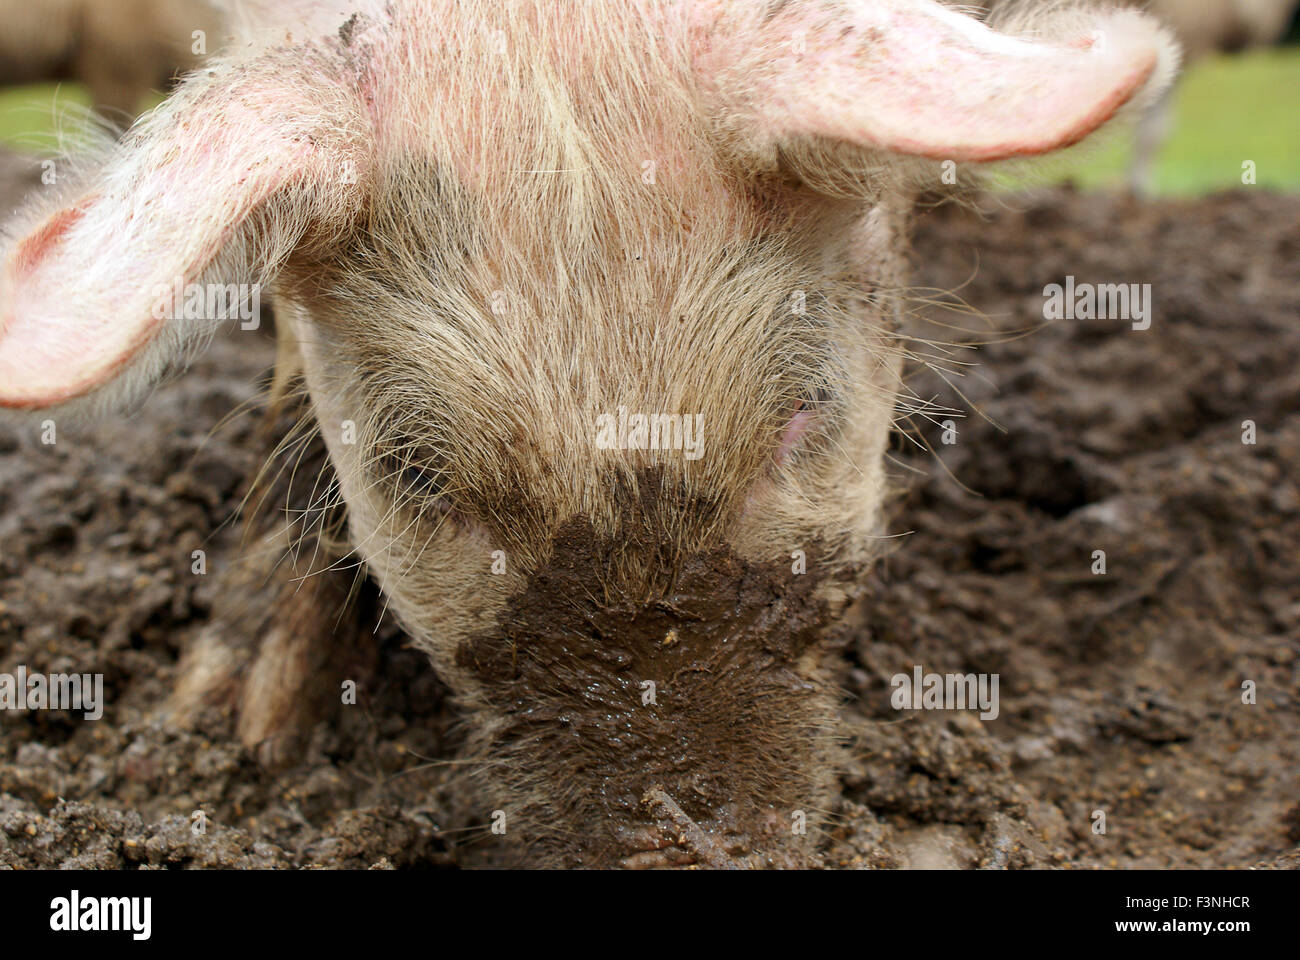 Pig finding goods in the mud - Stock Image